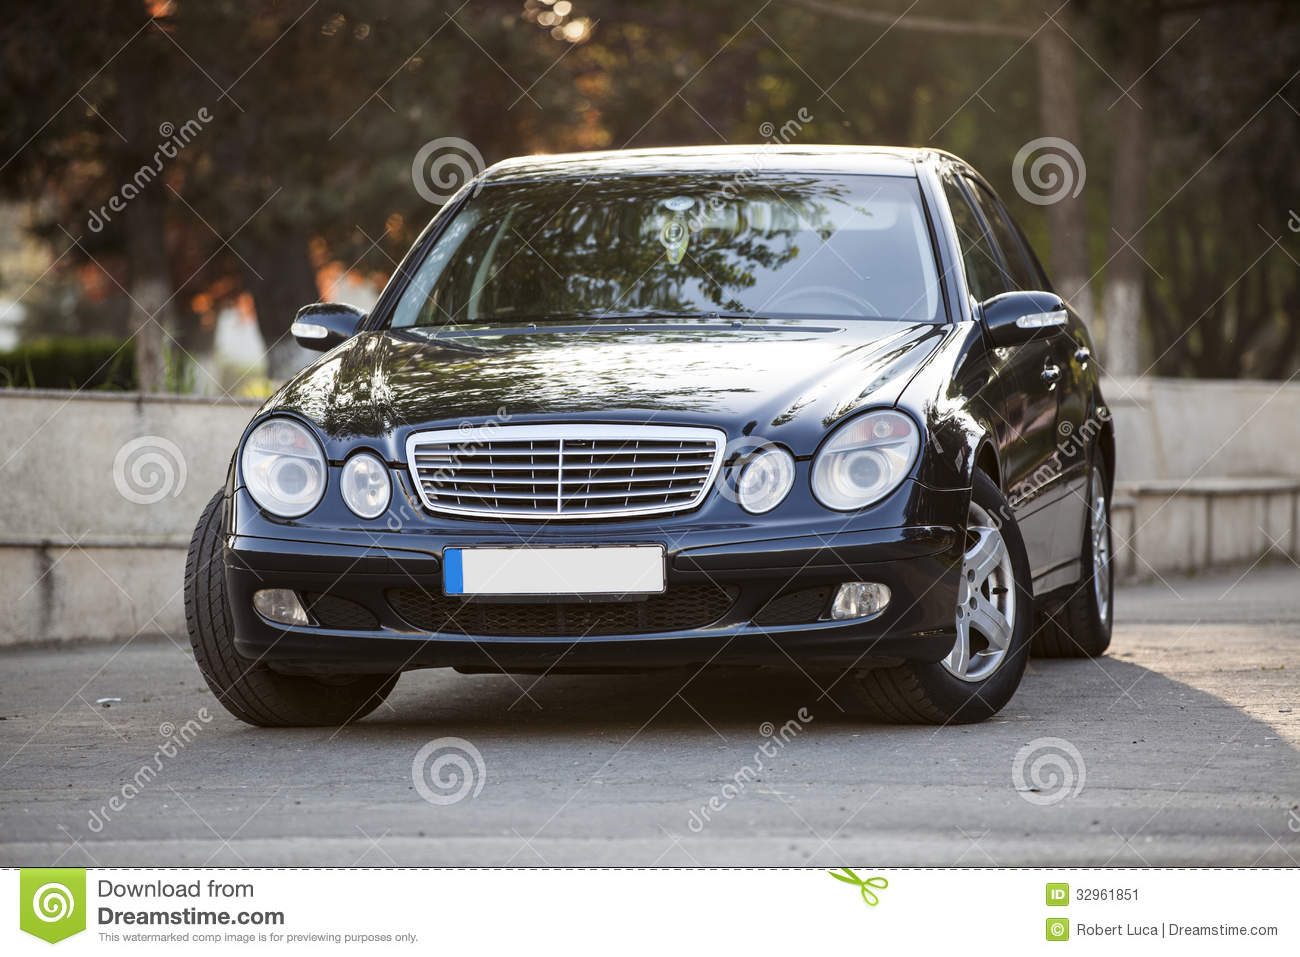 Mercedes benz e class model 2004 stock image image 32961851 for Mercedes benz e class models